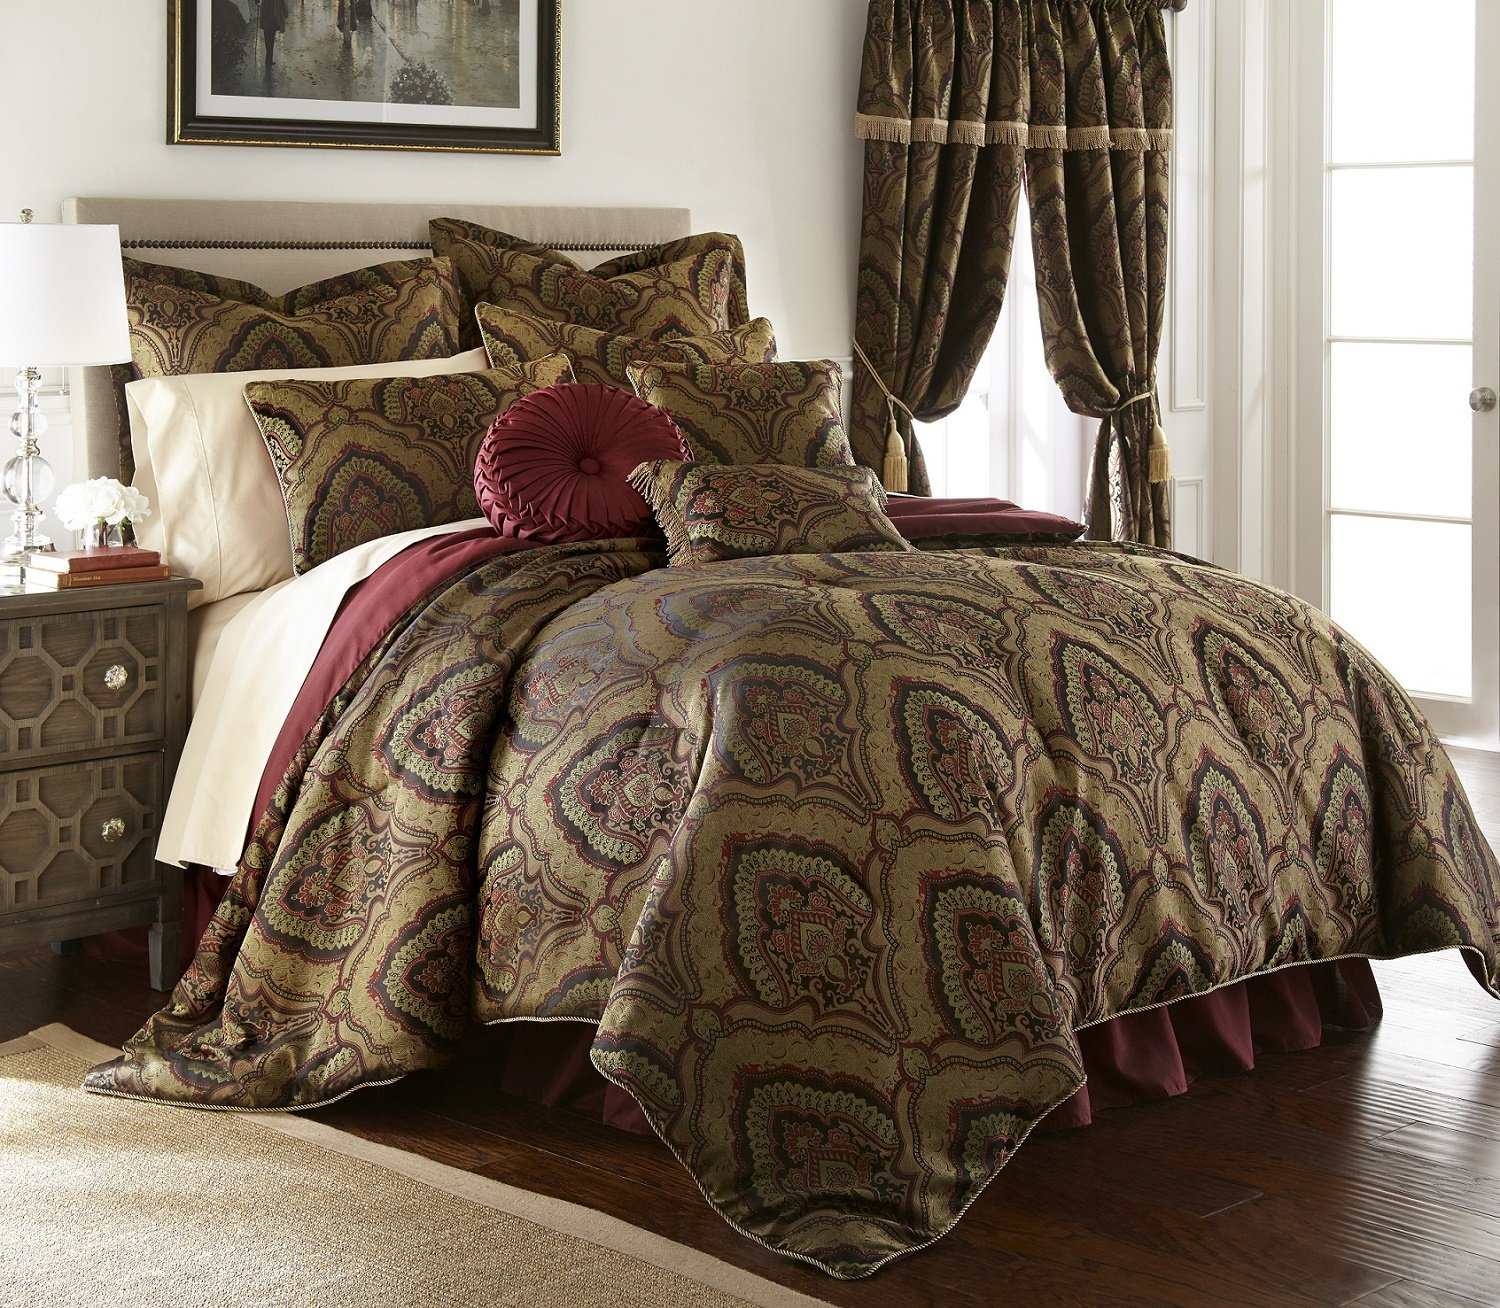 Chezmoi Collection Seville-Burgundy-Com-Queen 9-Piece Jacquard Black Gold Maroon Red Medallion Paisley Oversized Comforter Set